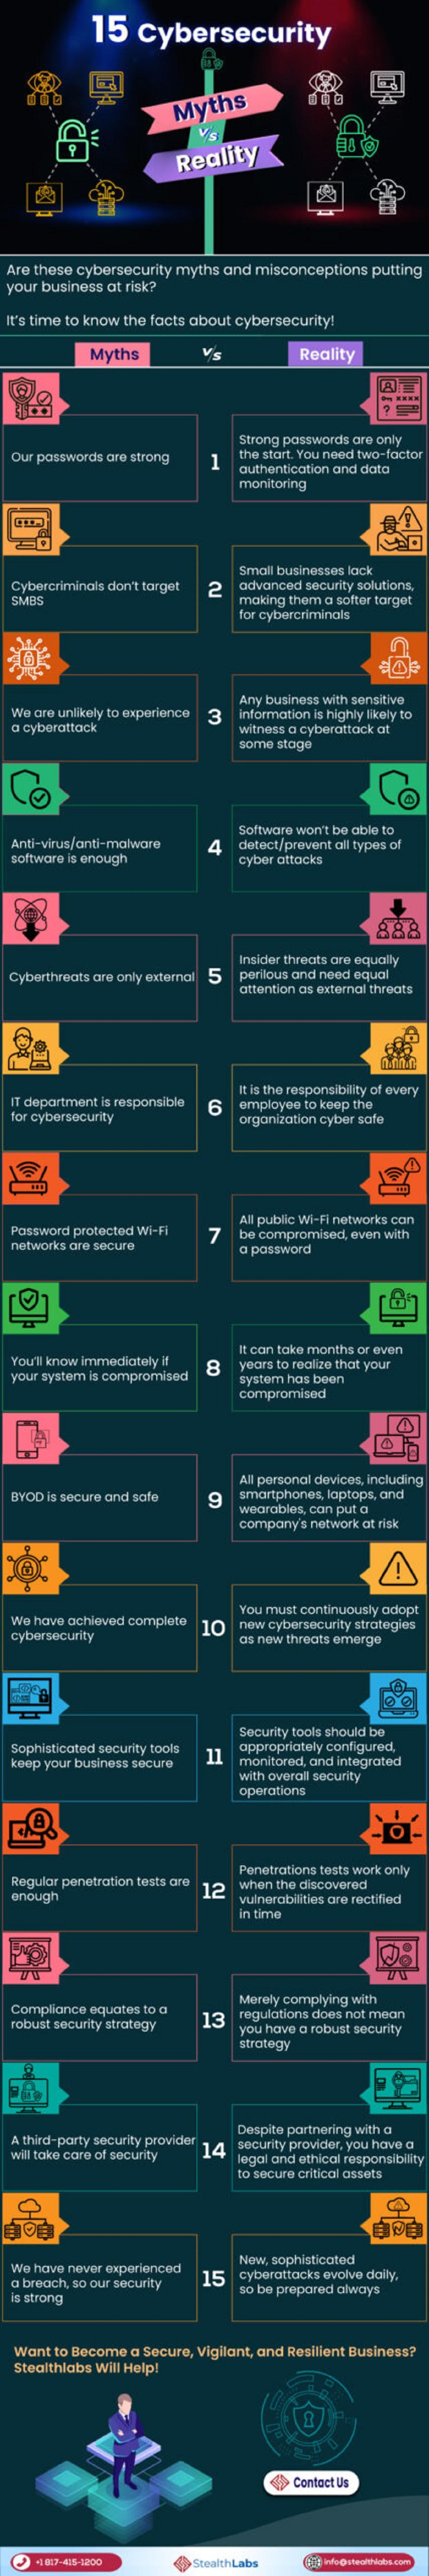 top-15-cybersecurity-myths-vs-reality-infographic